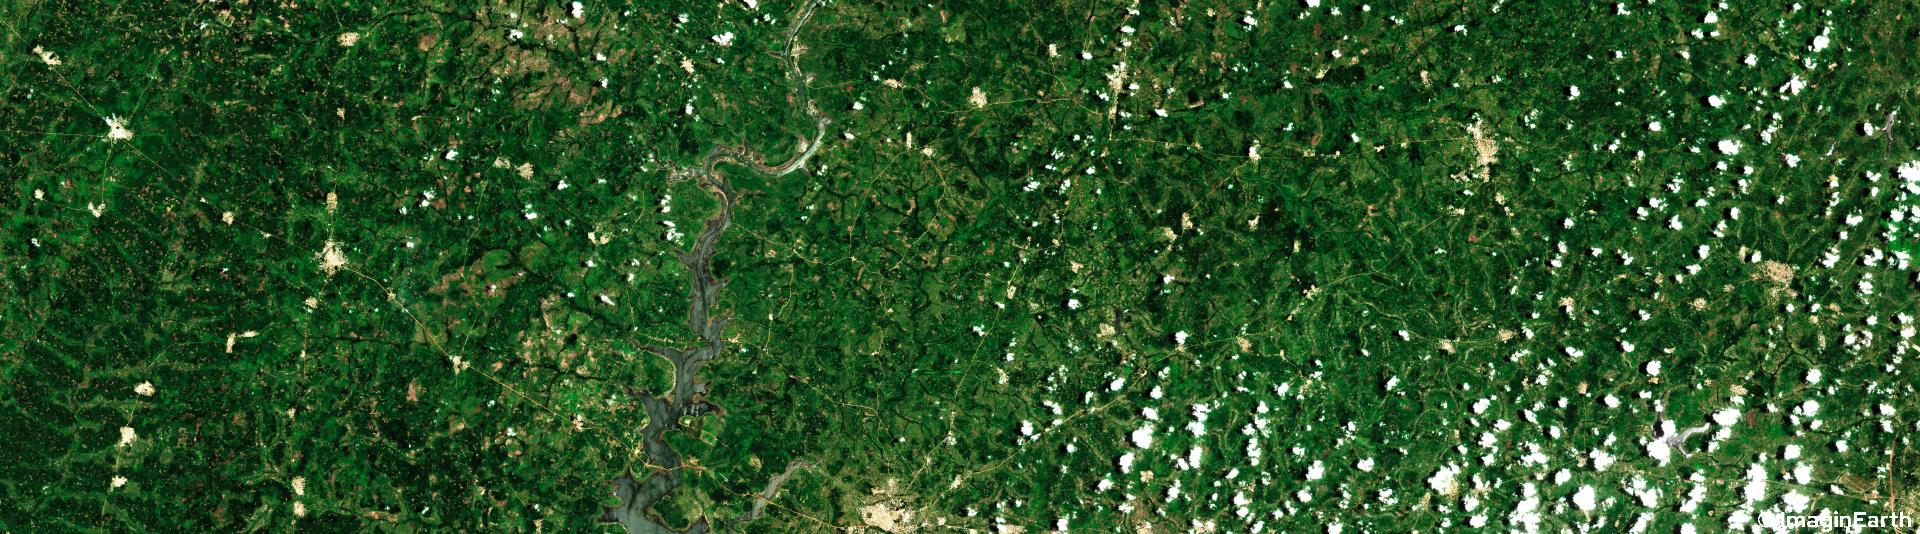 voyager au congo, côte d'ivoir, photo satellite